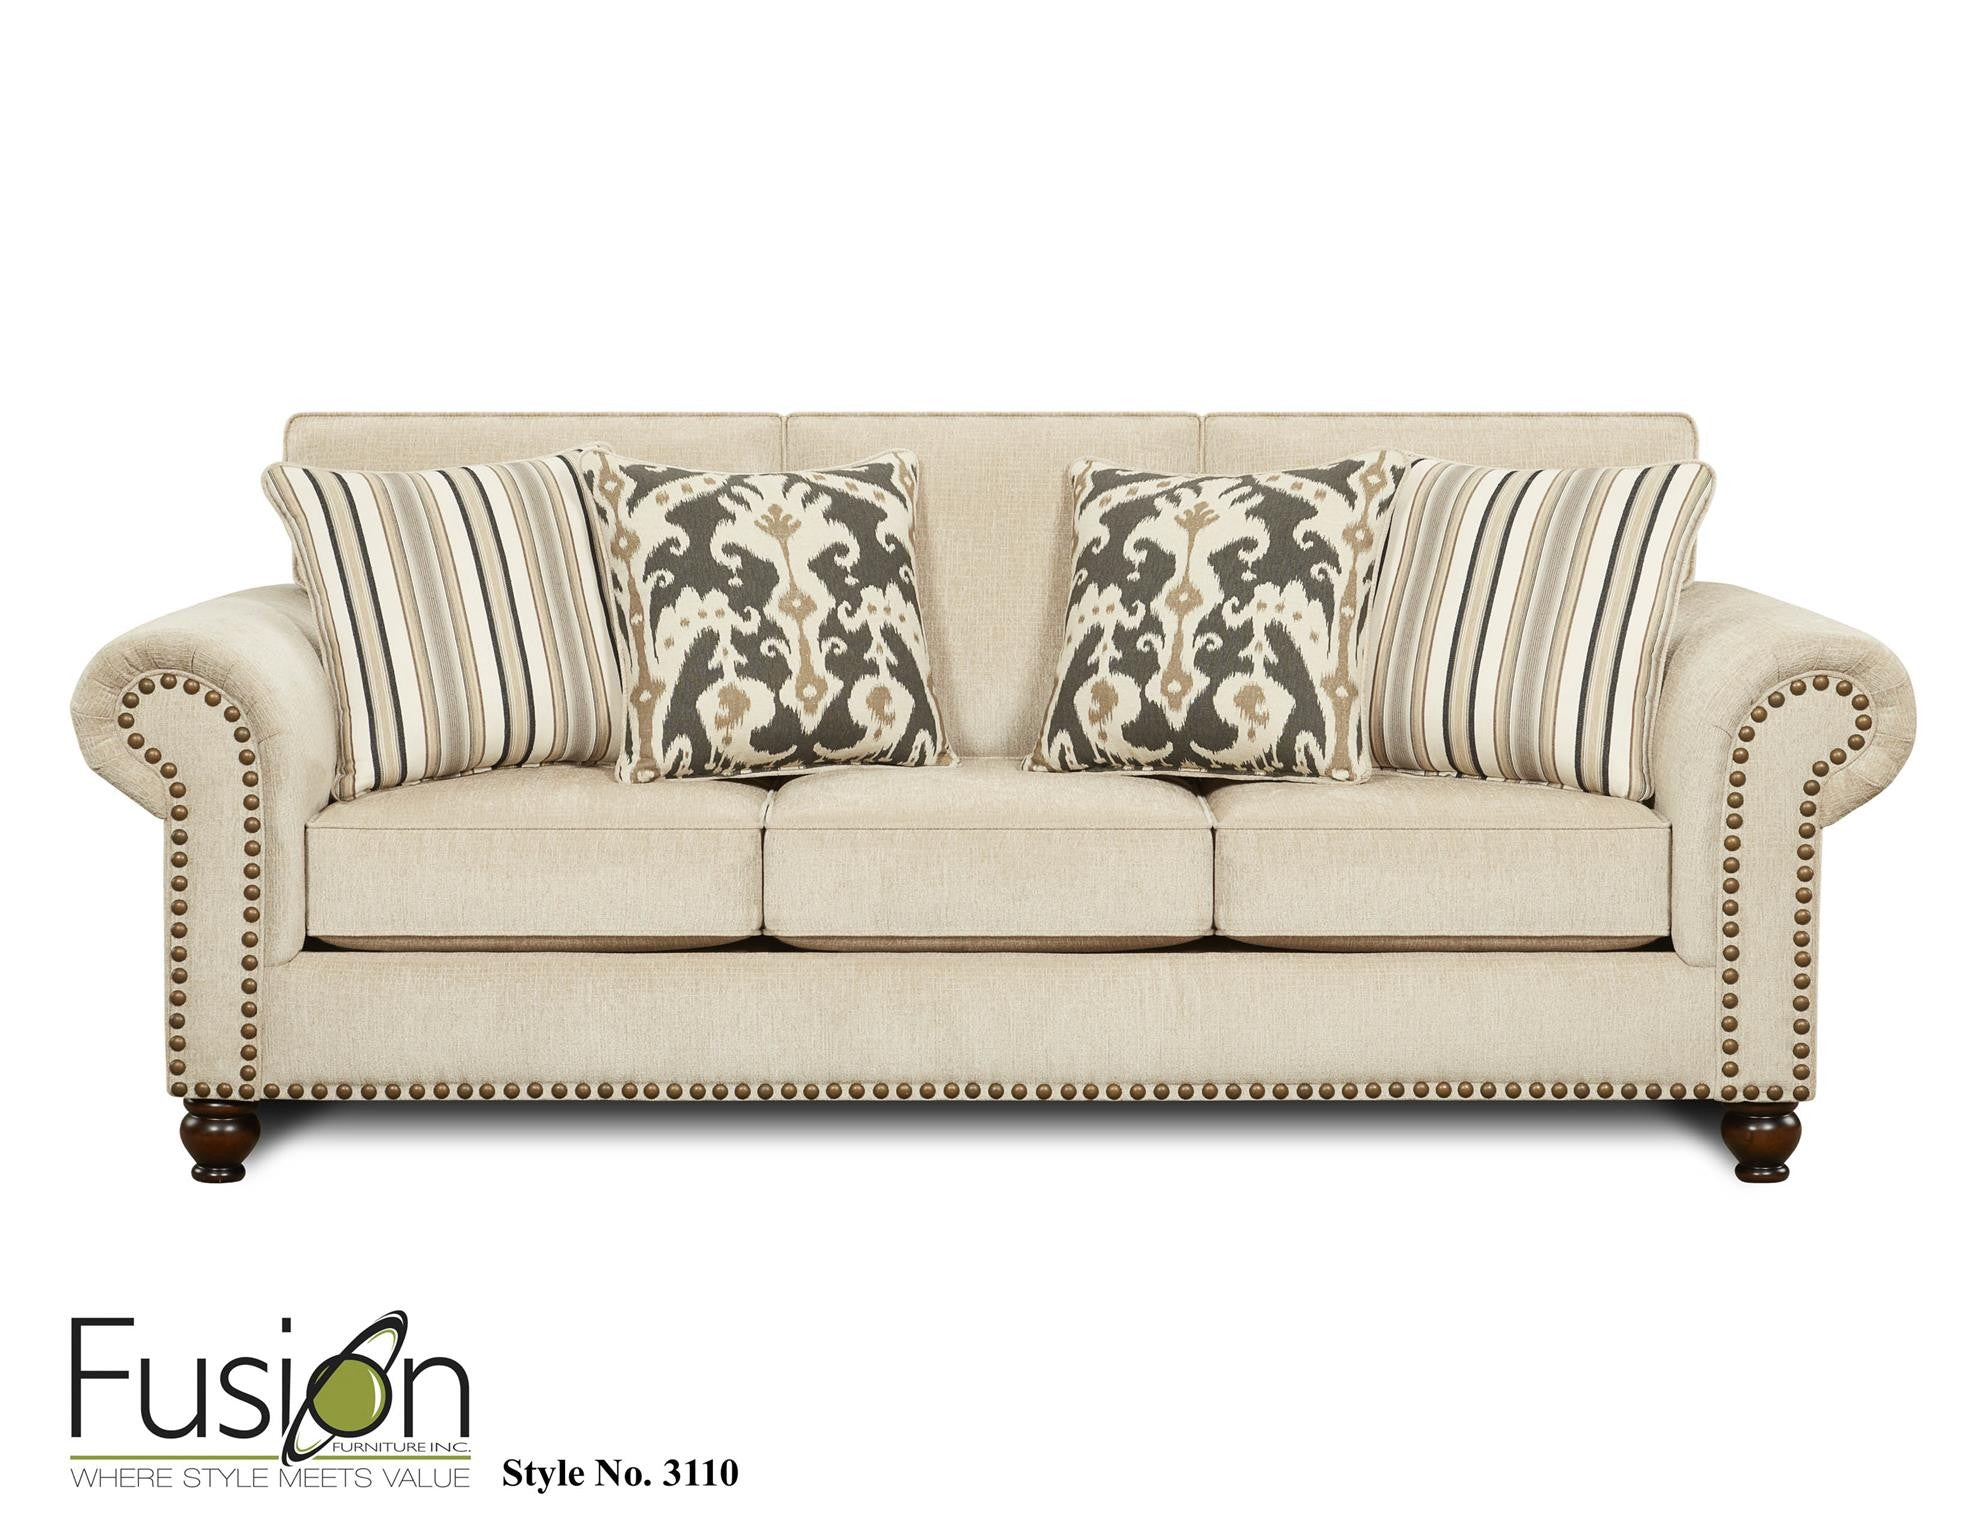 Kagan s Home Fusion 3110 Fairly Sand Sofa Sleeper